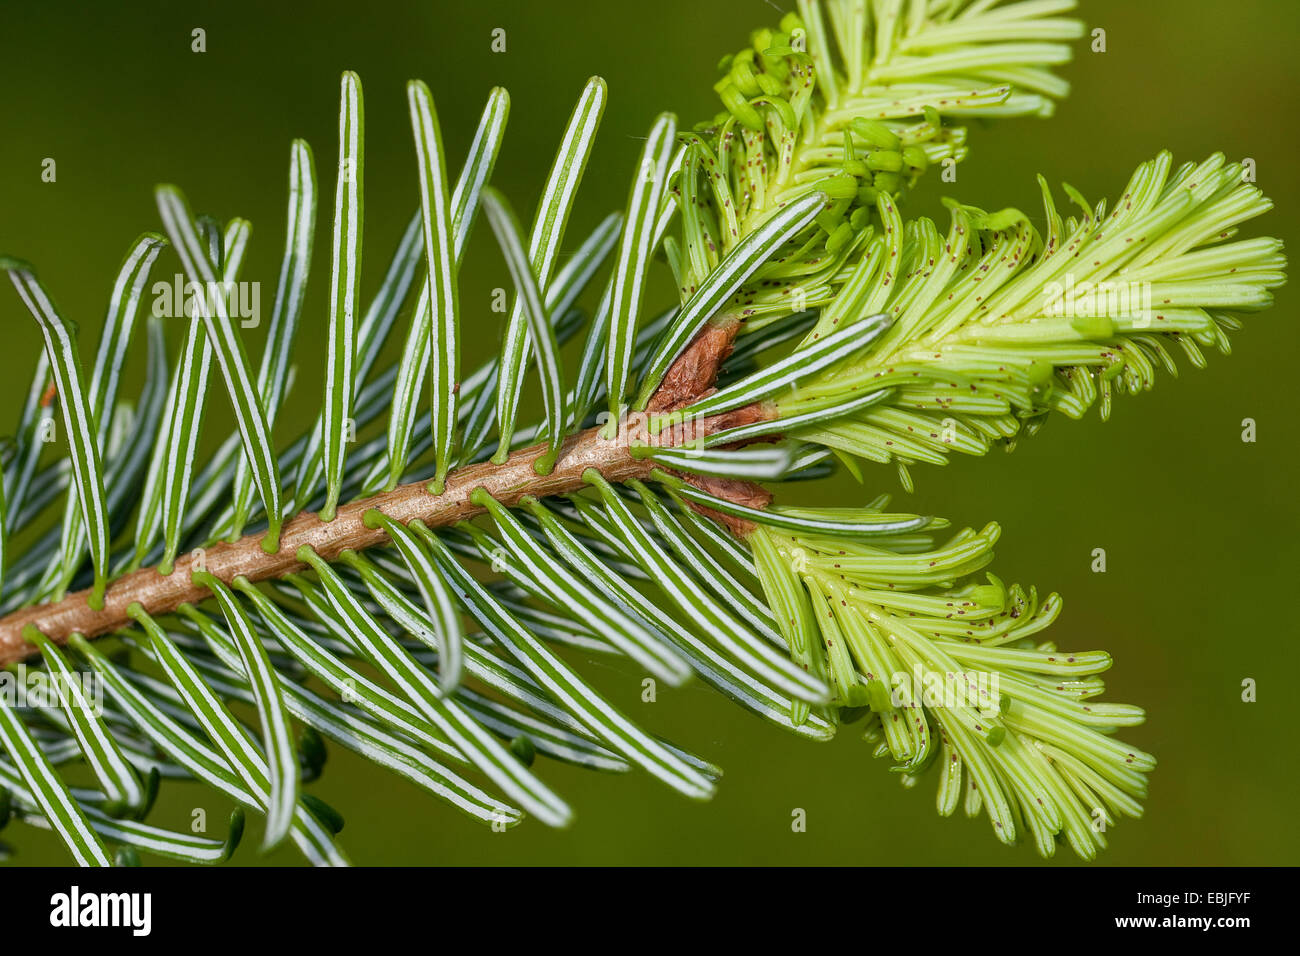 Nordmann Fir, Caucasian Fir, Christmas Tree (Abies nordmanniana), branches with young shoots, lower side with aphids - Stock Image